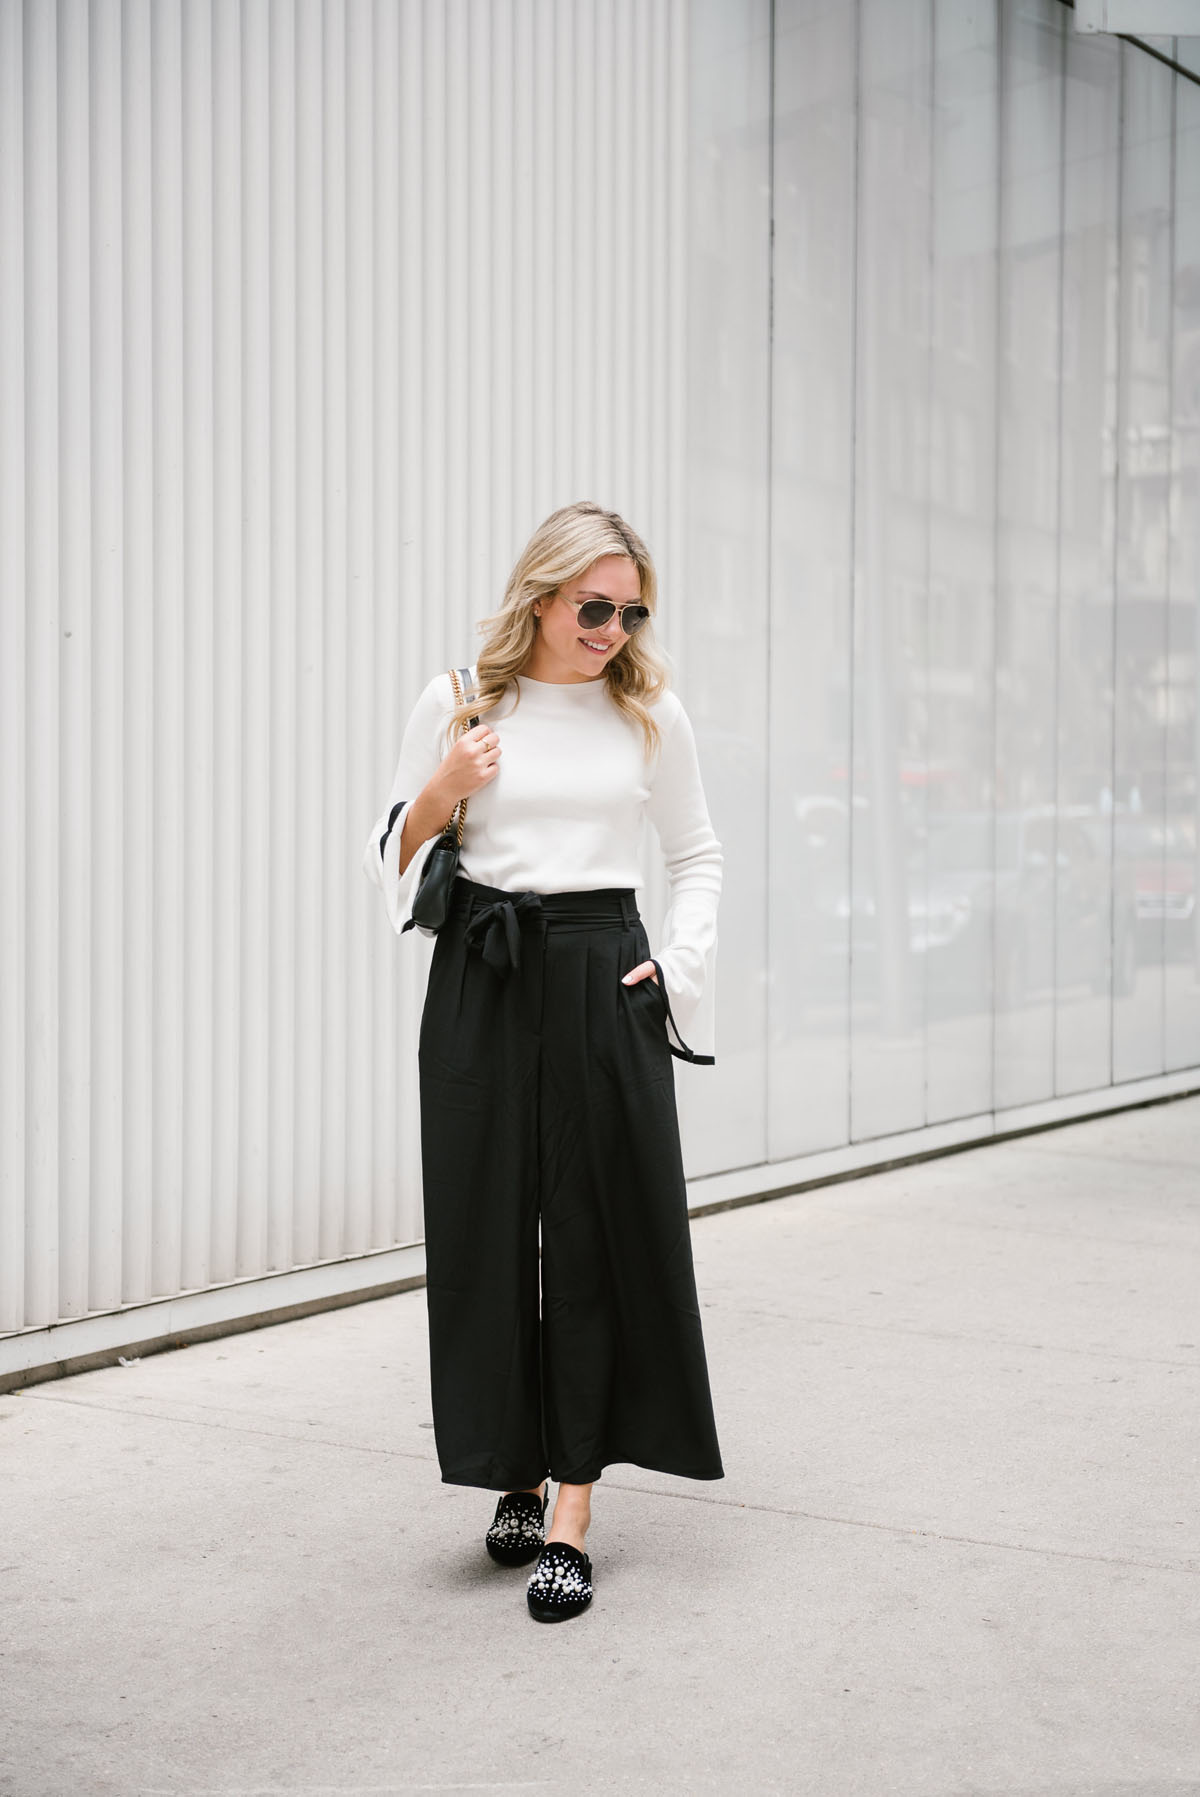 Fashion blogger Bows & Sequins wearing a black and white work wear outfit with a Gucci bag and aviators.